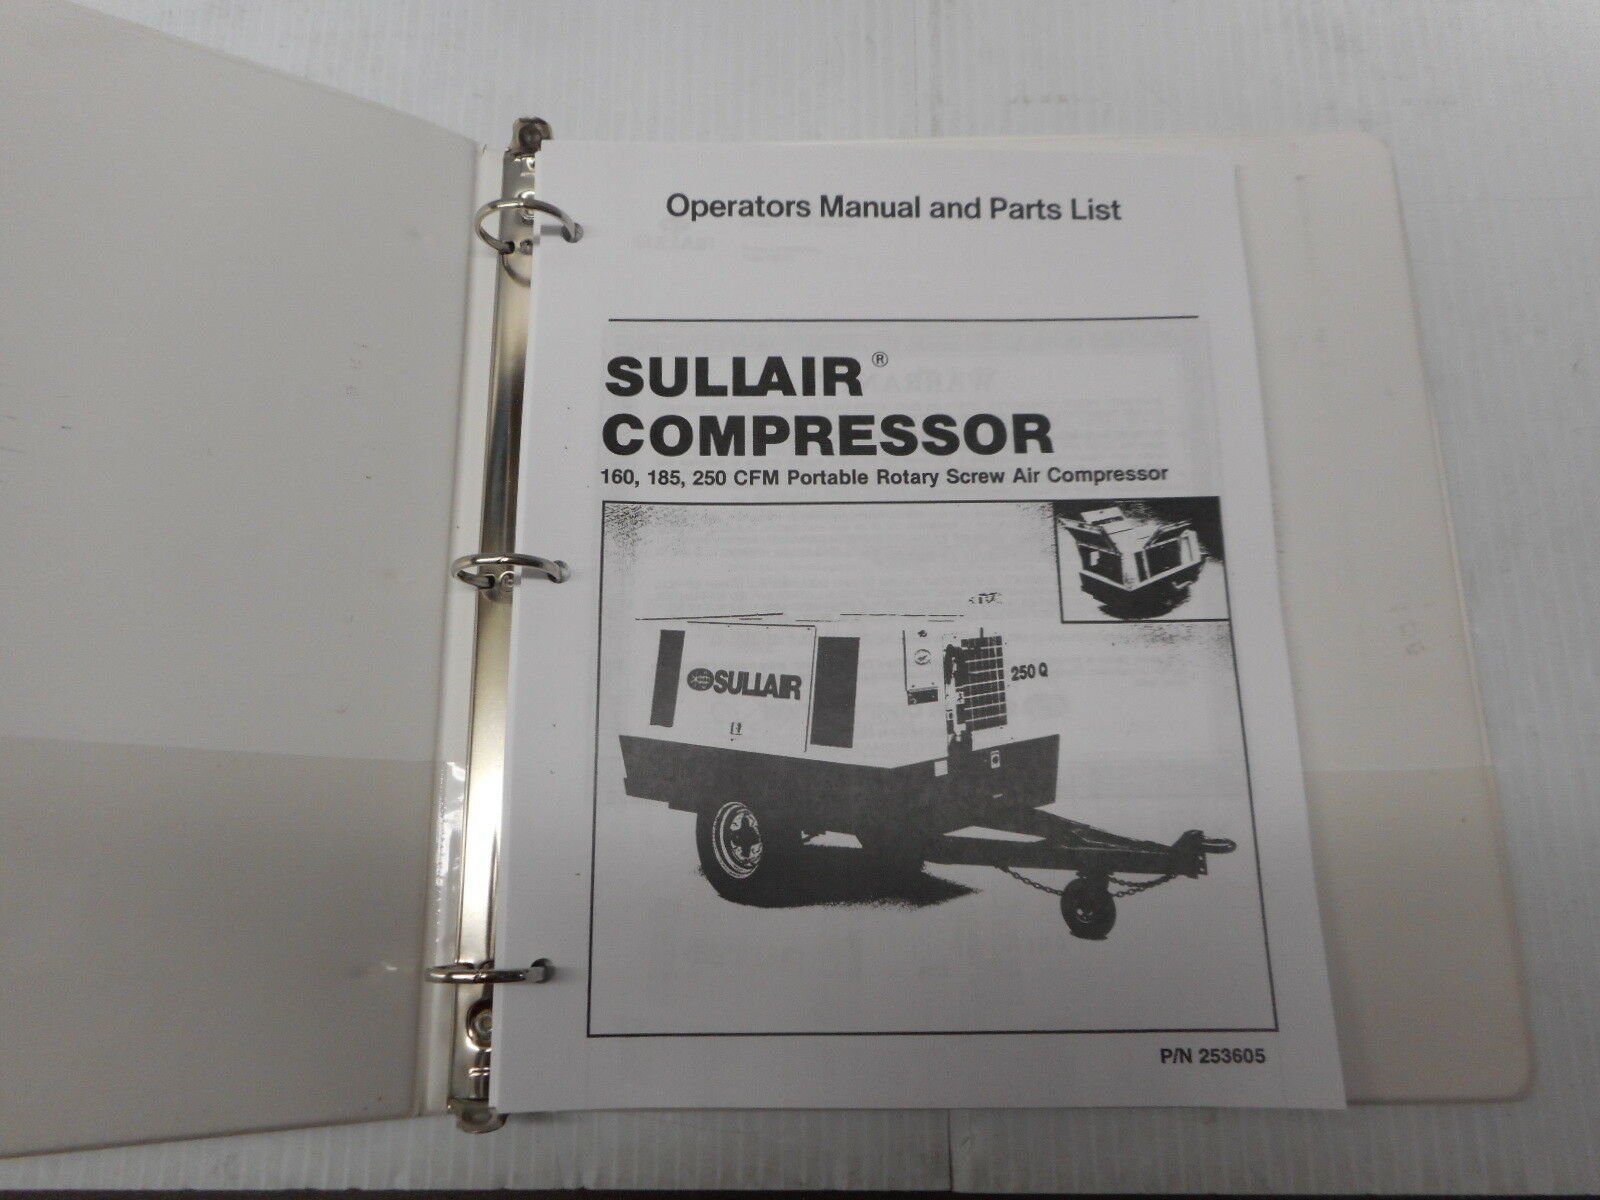 Sullair 160, 185, 250 CFM Portable Air Compressor Operators Manual 253605 1  of 5Only 1 available ...